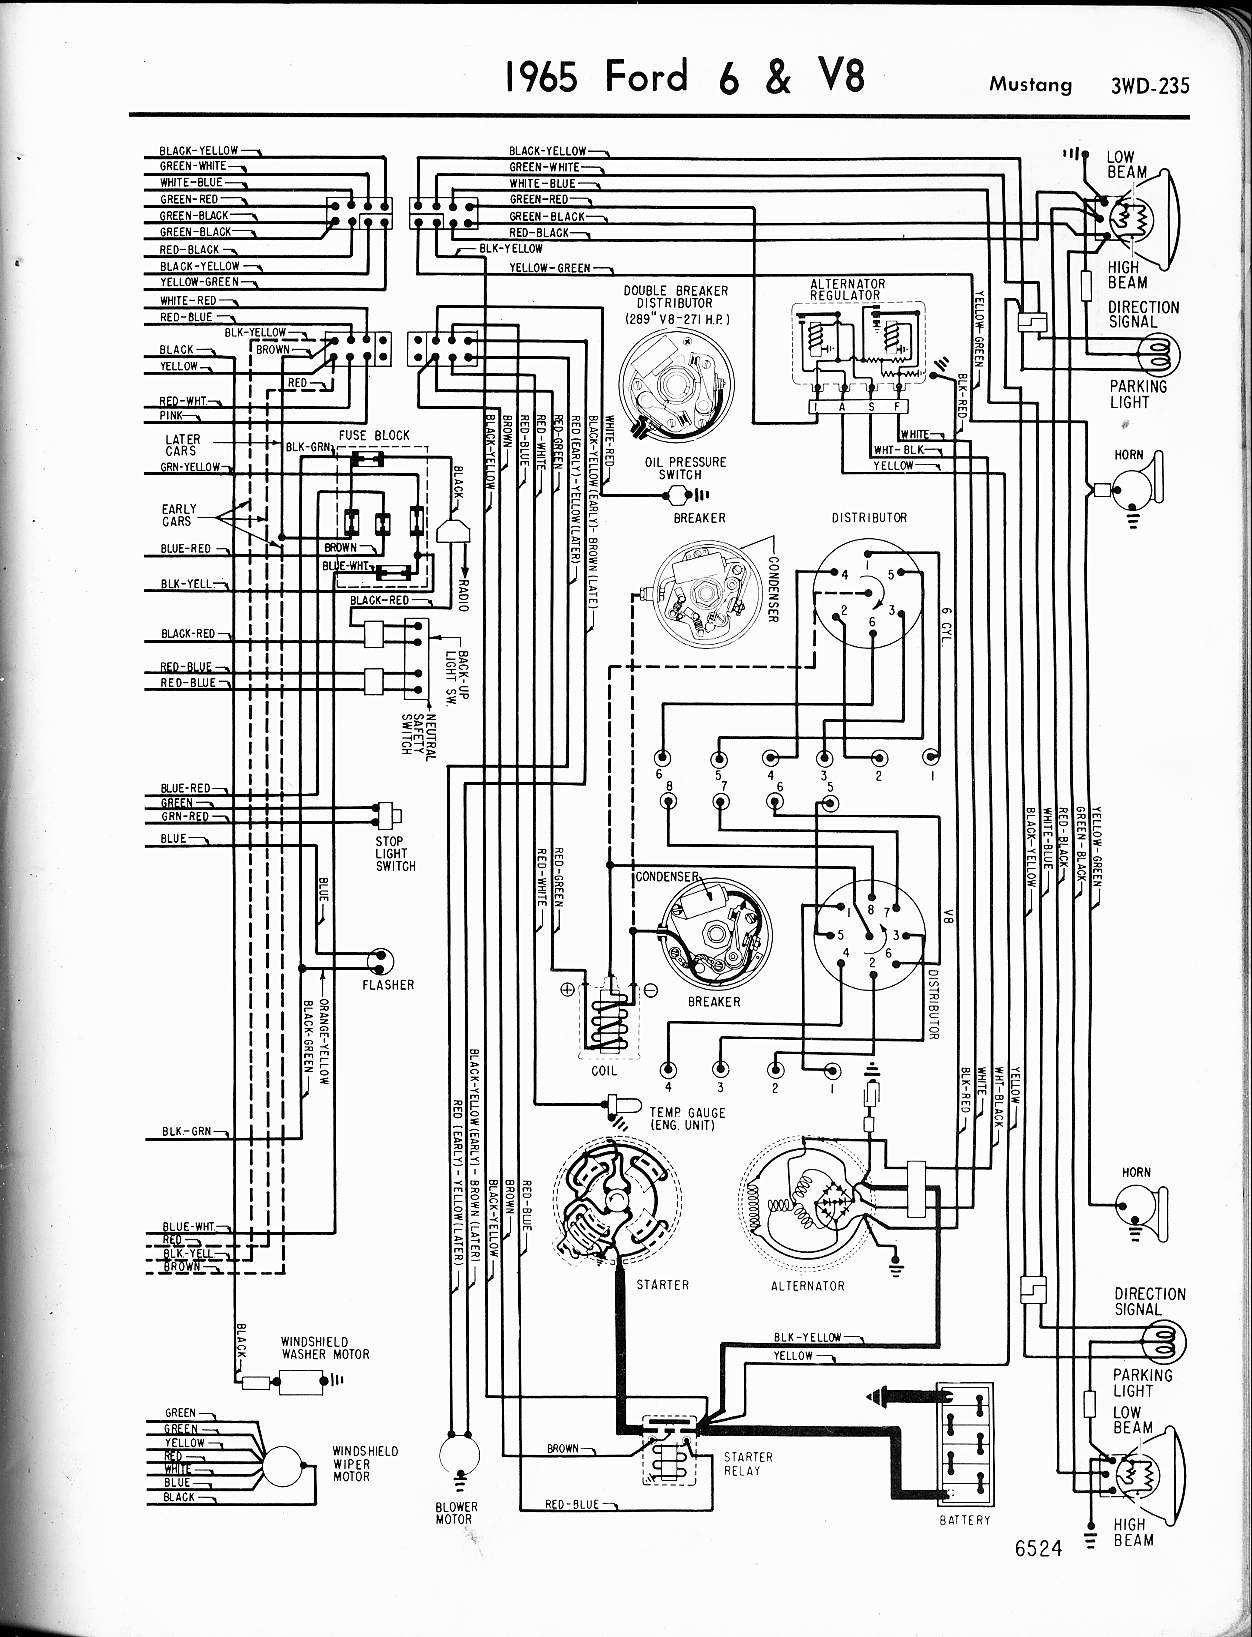 1965_mustang_wiring_2 ford diagrams Terminator Time Loop Diagram at webbmarketing.co